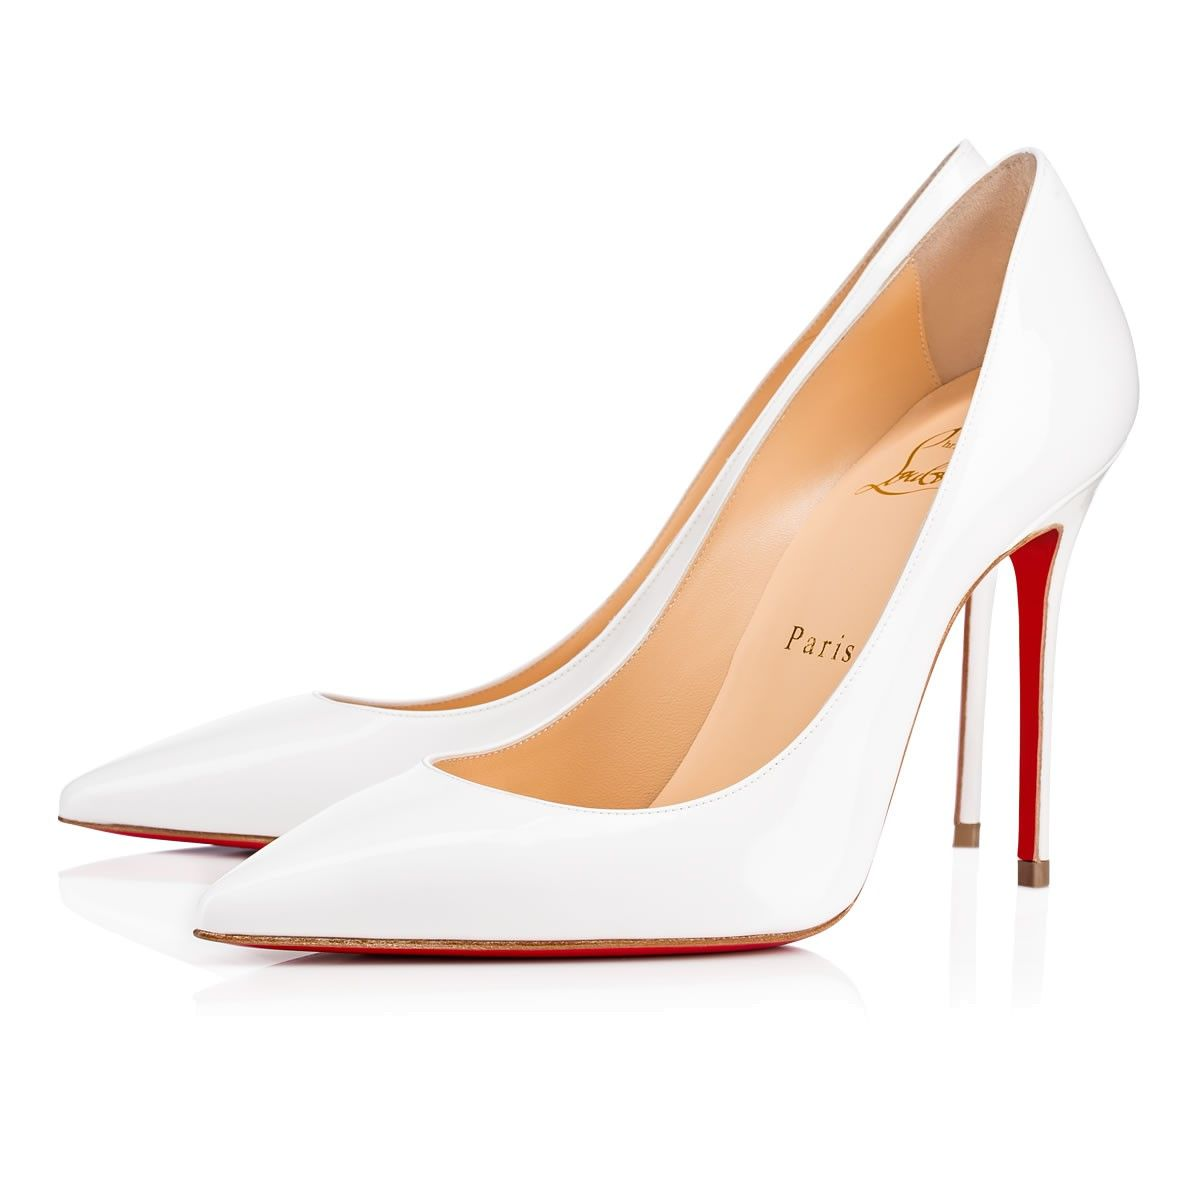 41322cdbda91 CHRISTIAN LOUBOUTIN Decollete 554 100mm Latte Patent Leather.   christianlouboutin  shoes